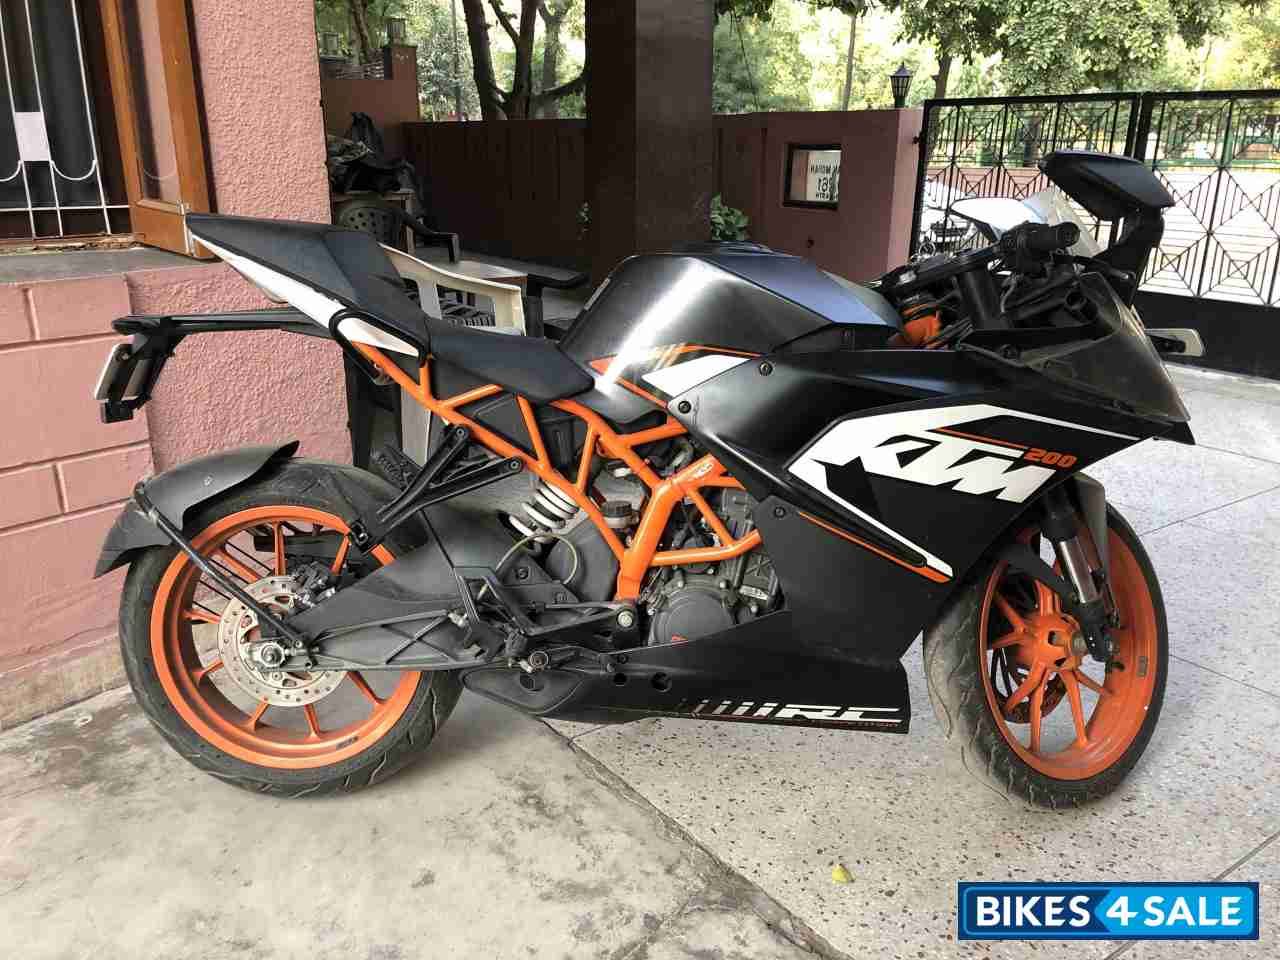 Used 2015 Model Ktm Rc 200 For Sale In Ghaziabad Id 245791 Black Colour Bikes4sale